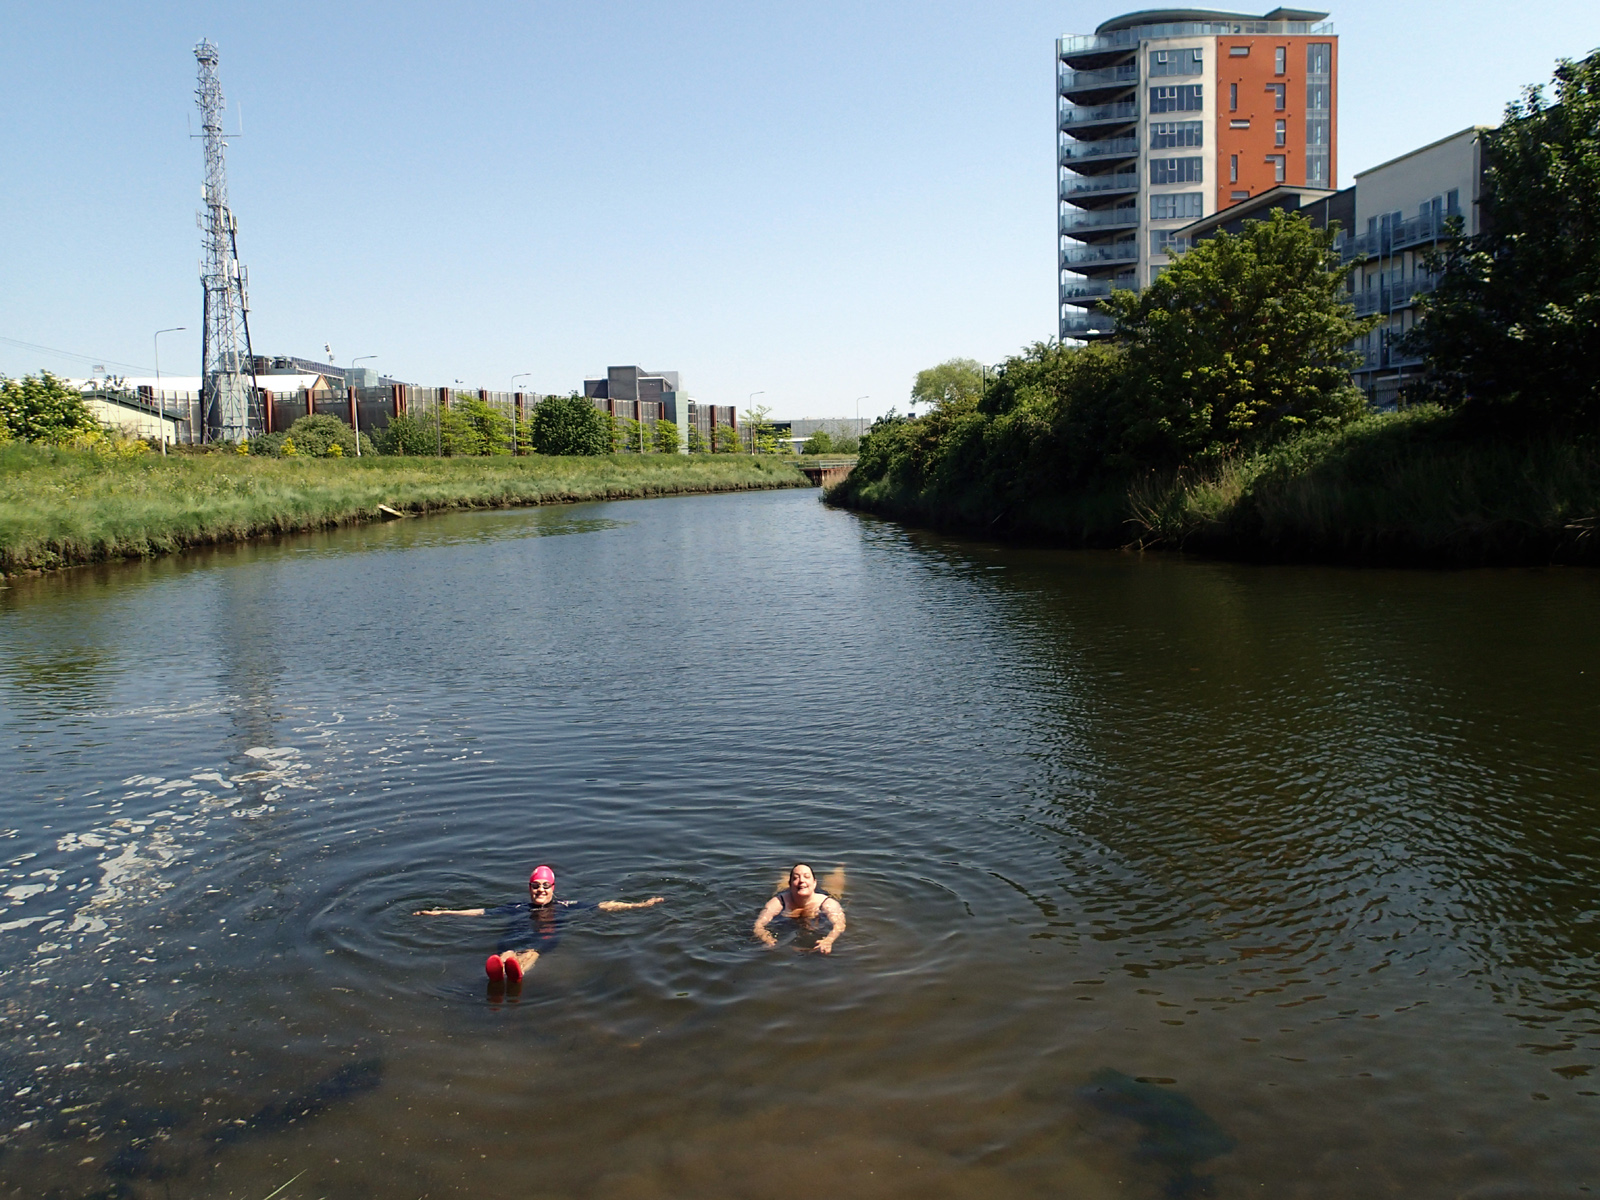 two women swimming in river with grassy banks and buildings in background